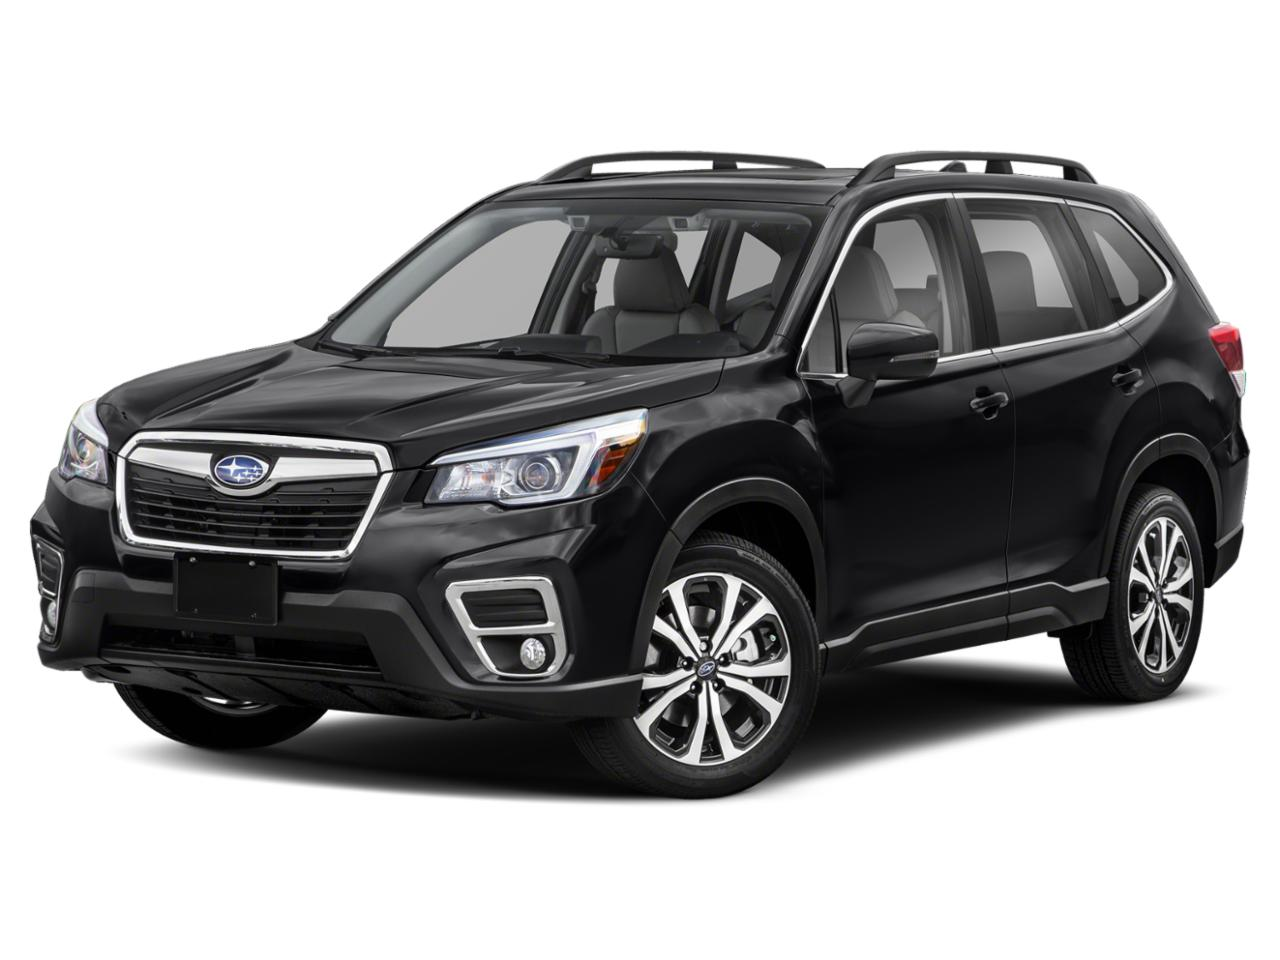 2019 Subaru Forester Vehicle Photo in Cape May Court House, NJ 08210